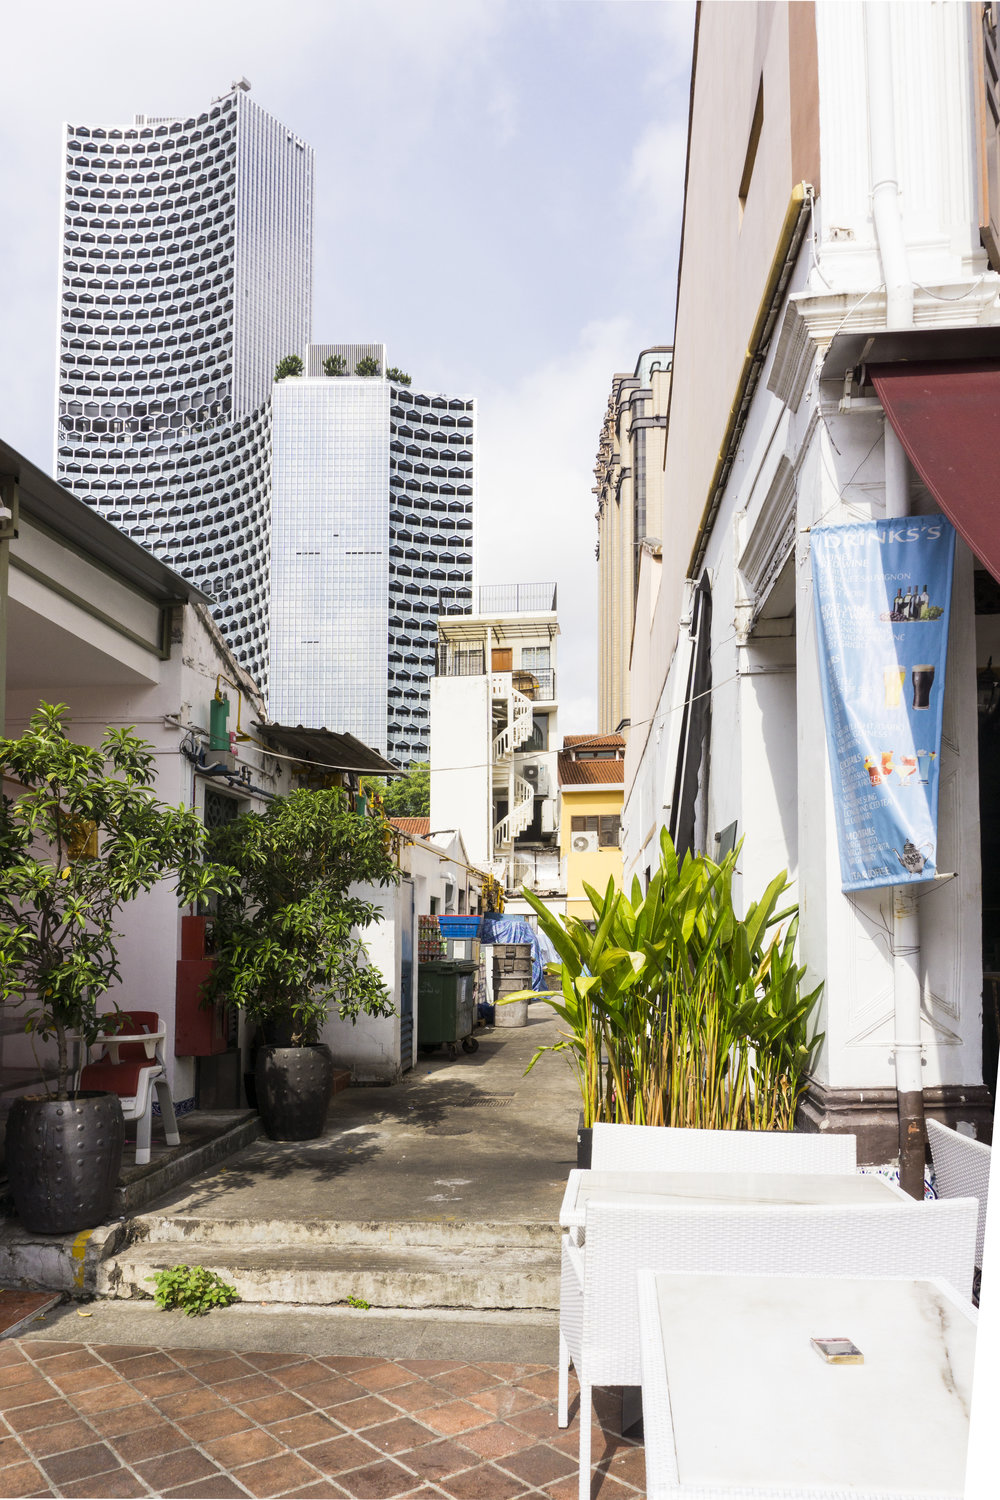 singapore arab street haji lane architecture